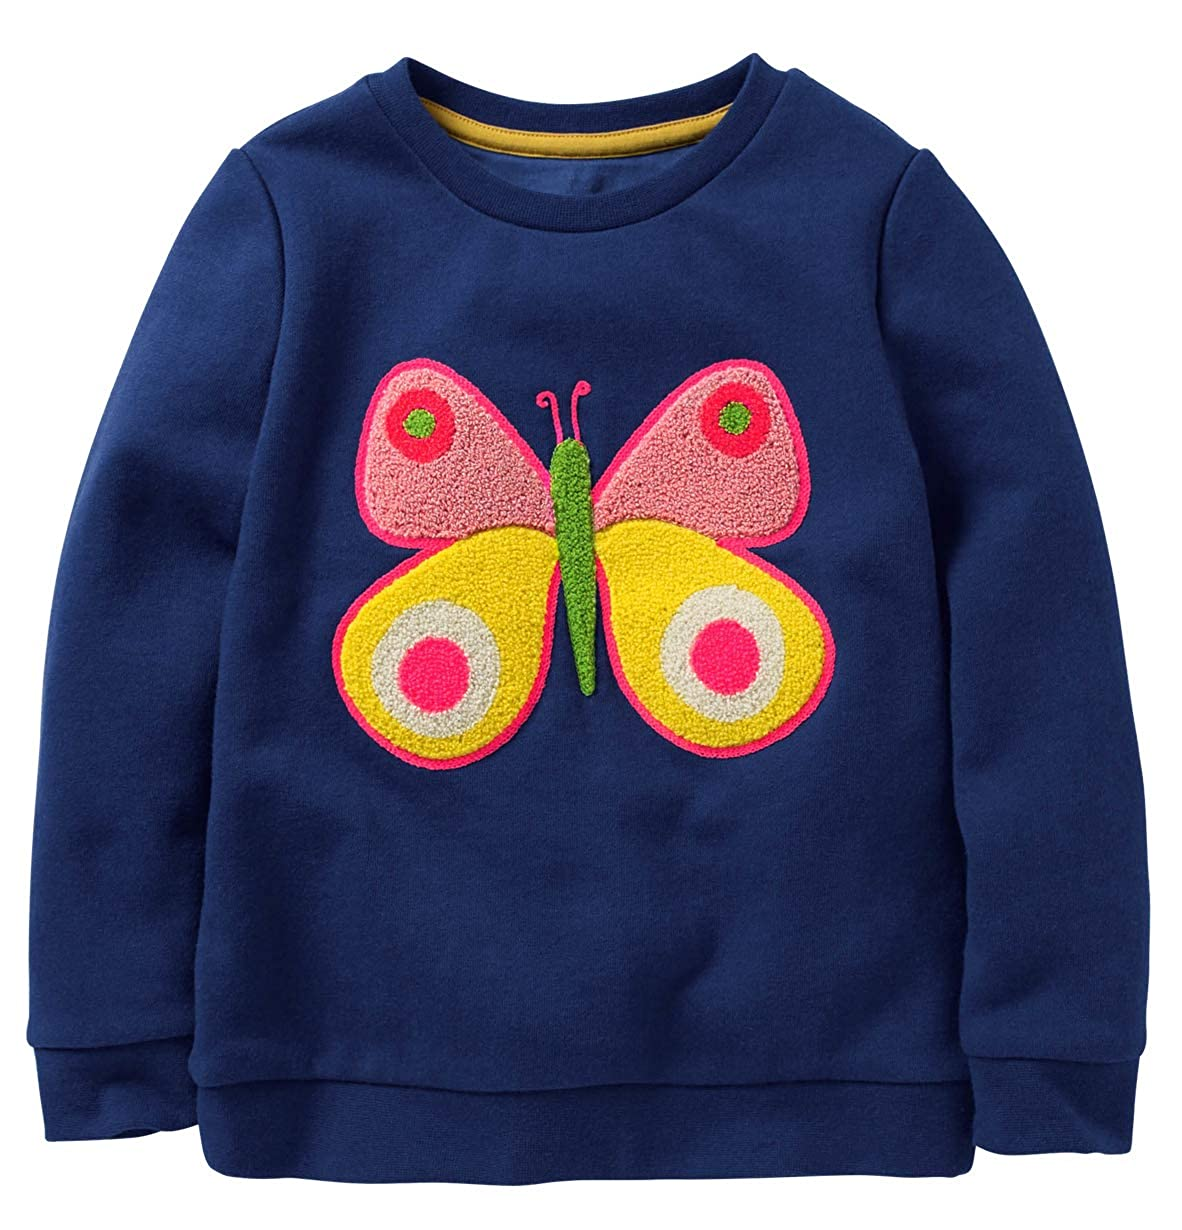 Fiream Girls Cotton Crewneck Cute Embroidery Sweatshirts TZwy070